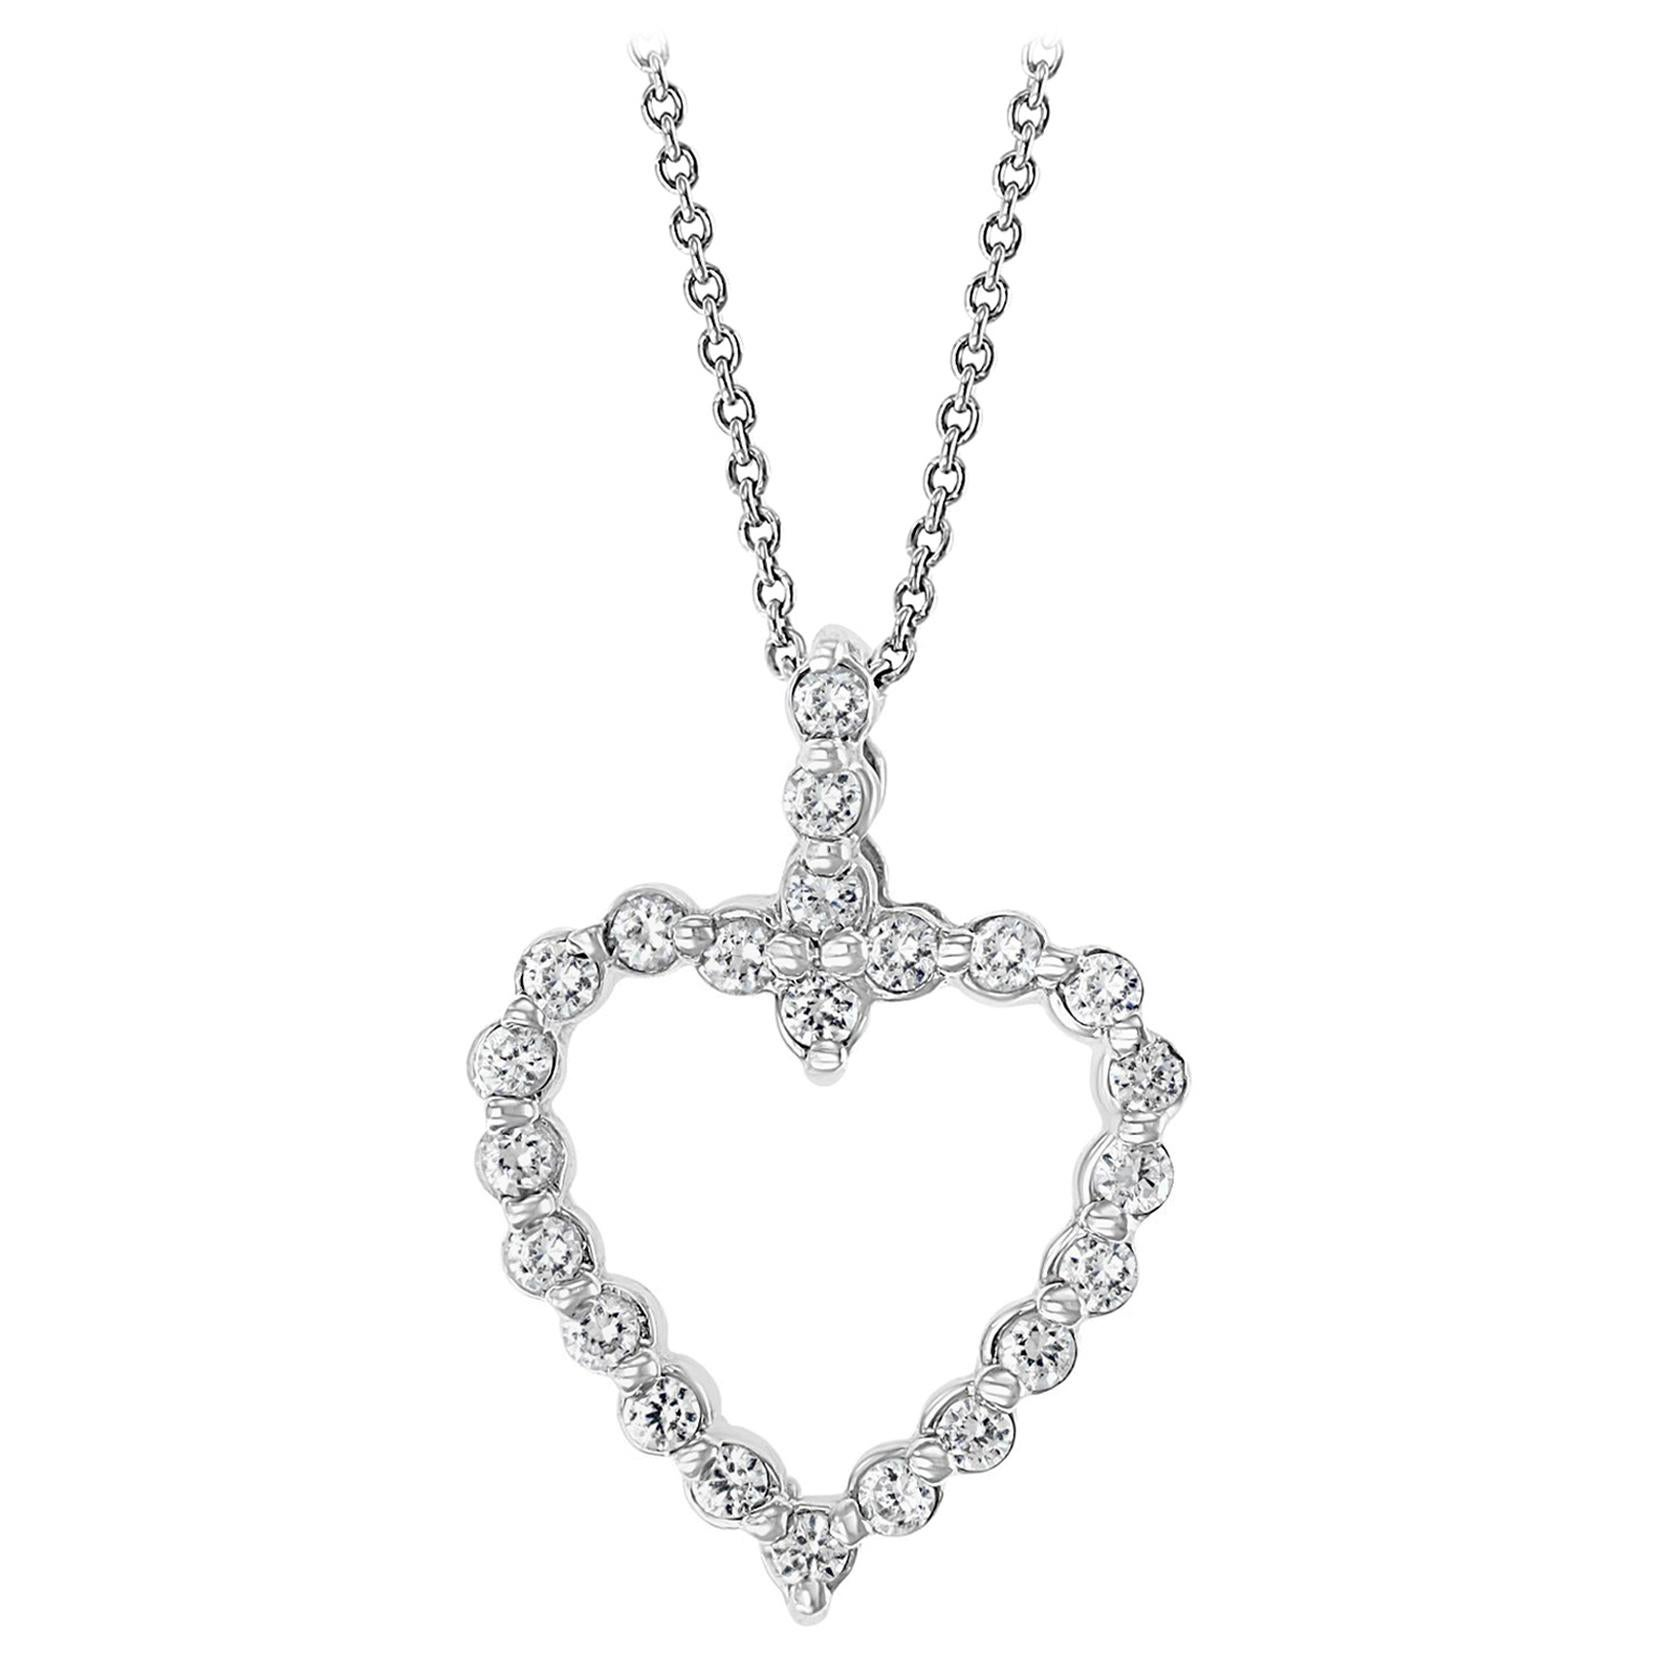 1 Carat Diamond Heart Pendant/ Necklace 14 Karat White Gold with Chain